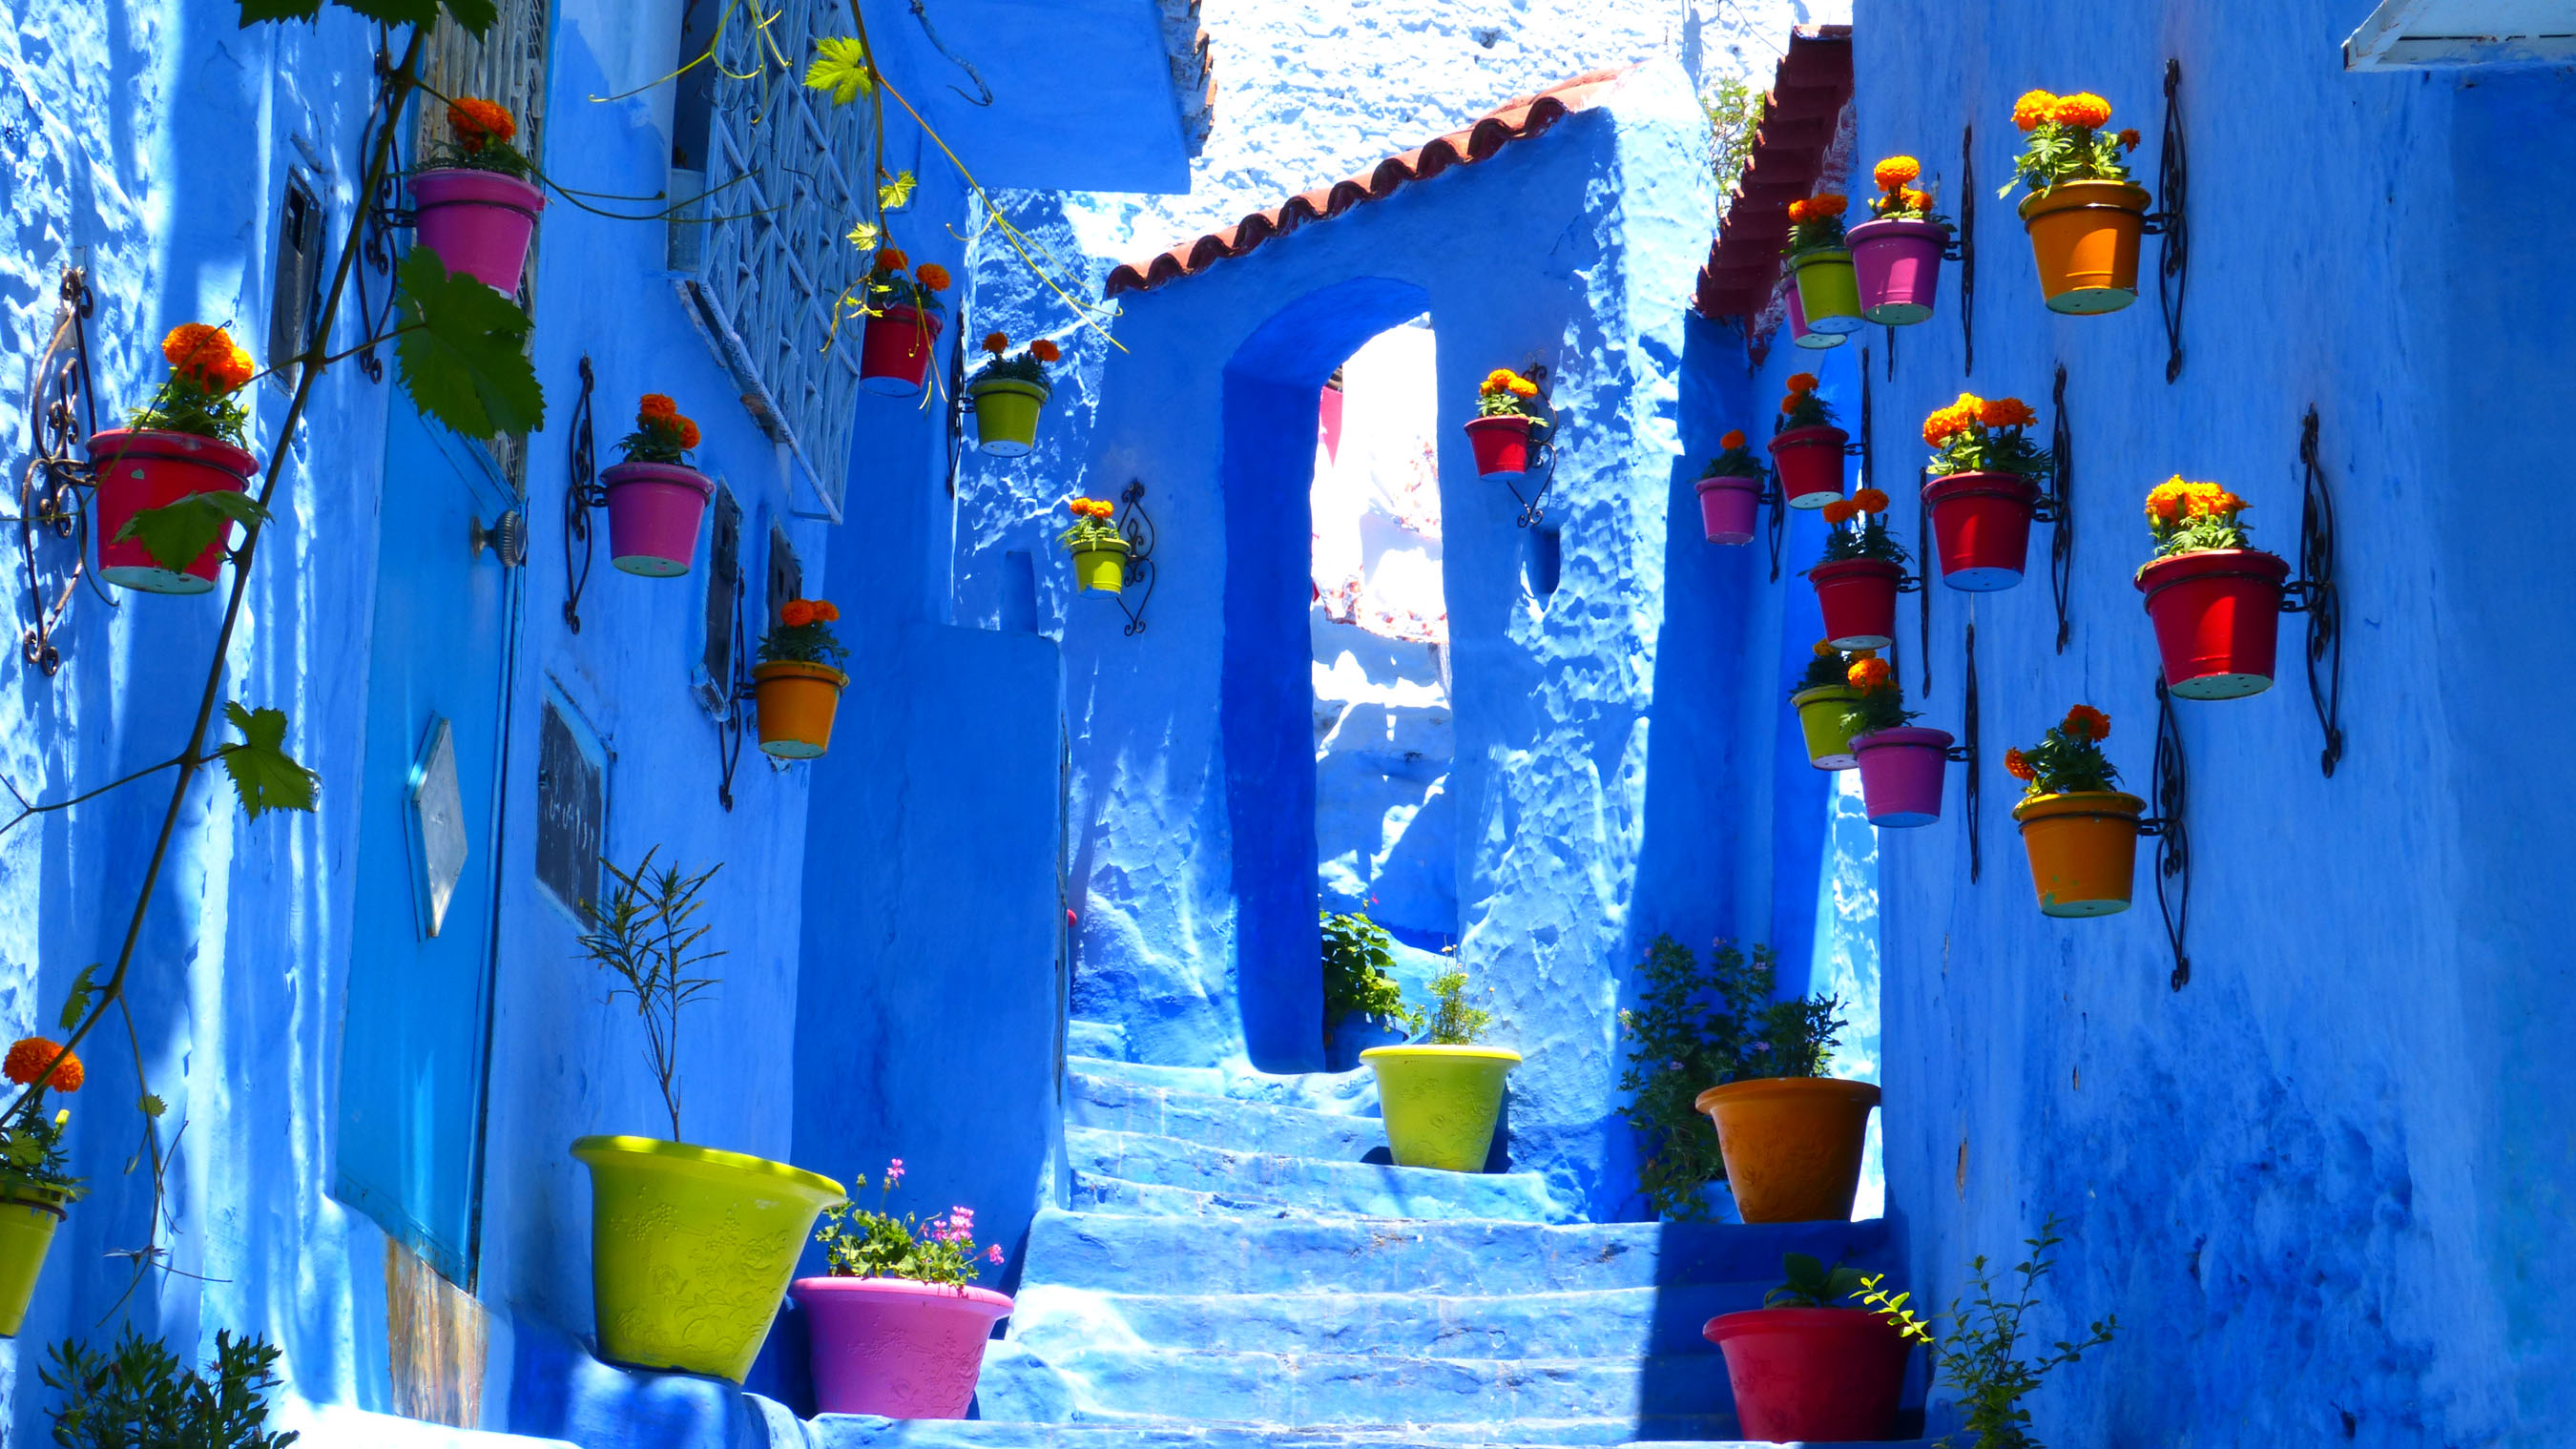 Home Landscapes Marrakech To Chefchaouen Tour In 6 Days Guided Morocco Tours